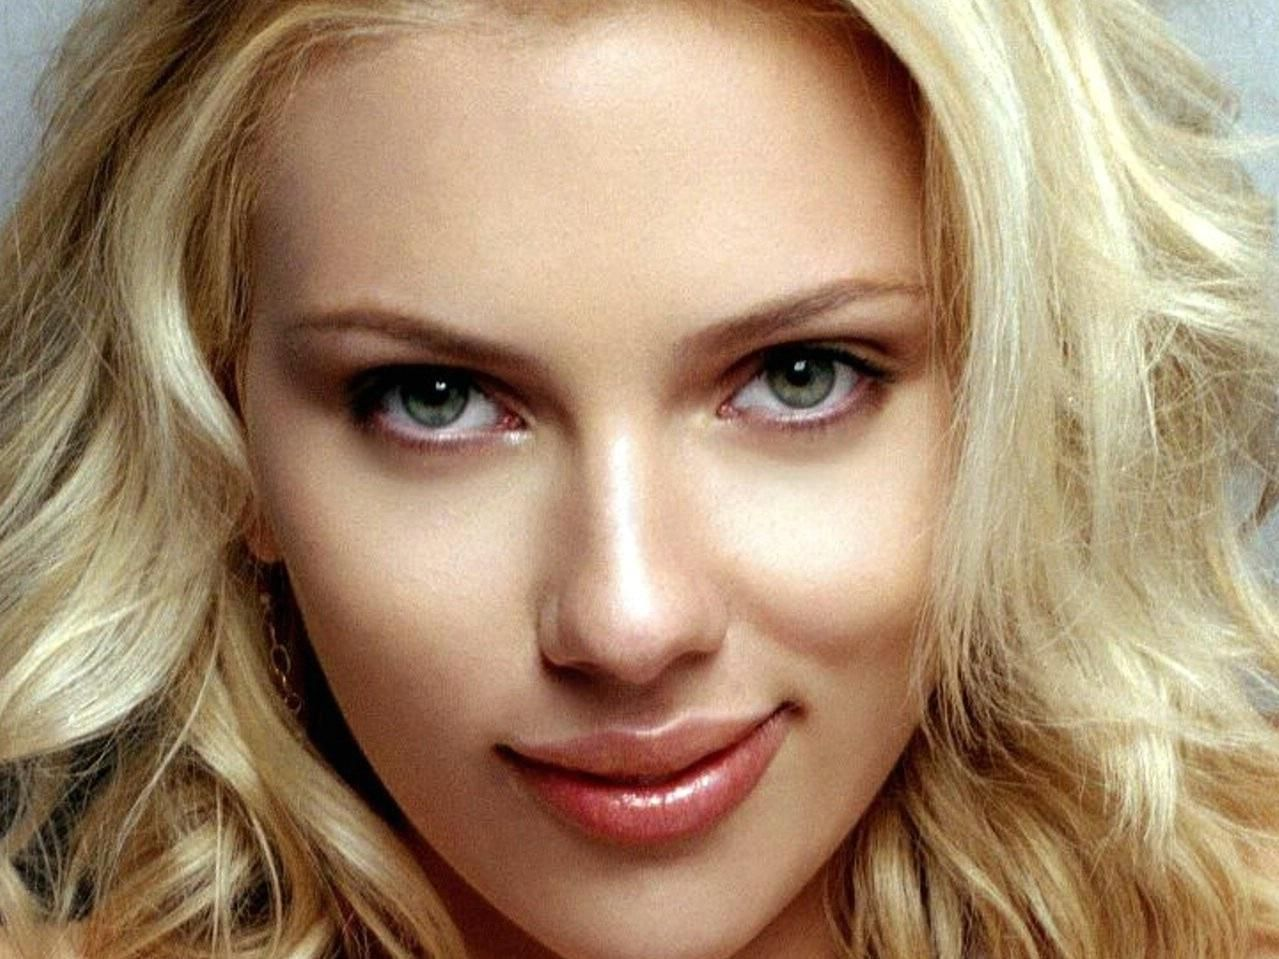 K Ultra HD Scarlett johansson Wallpapers HD, Desktop Backgrounds 1920×1200 Scarlett  Johansson Wallpaper … | Scarlett johansson, Scarlett johanson, Scarlet  johansson